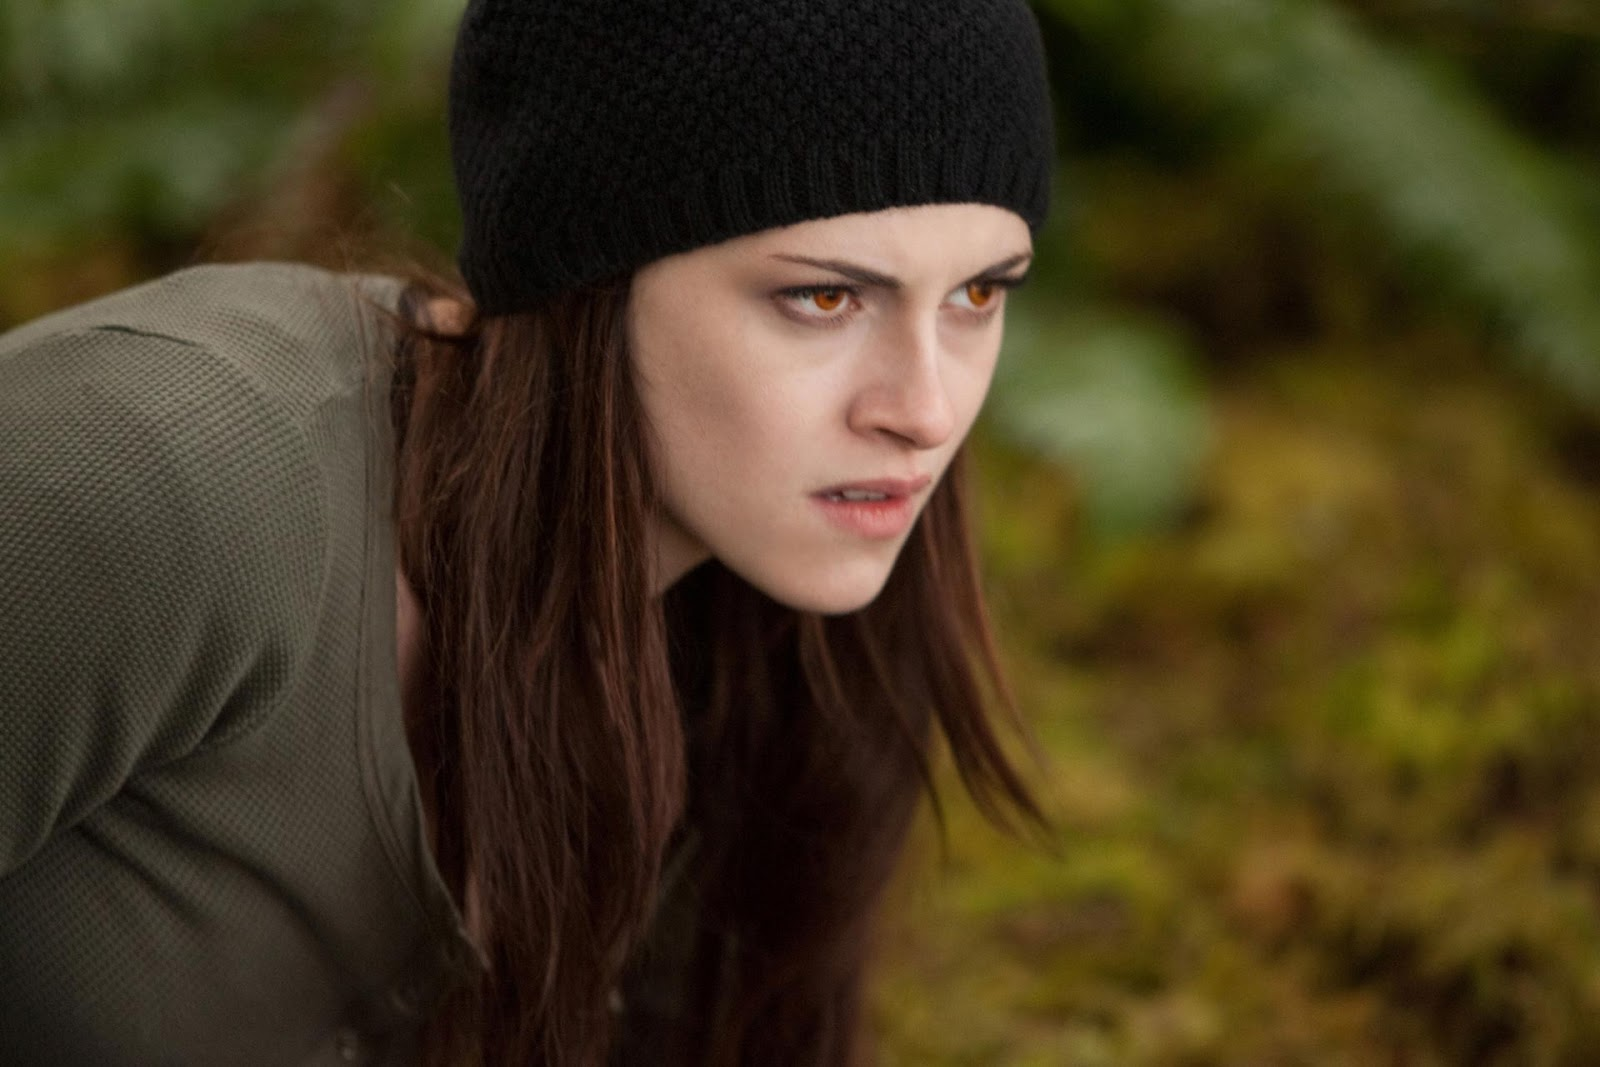 http://4.bp.blogspot.com/-4u_8Mytrhak/UKbji7_YbEI/AAAAAAAAHNY/hyFqANb7dis/s1600/Twilight-Breaking-Dawn-Part-2_08.jpg